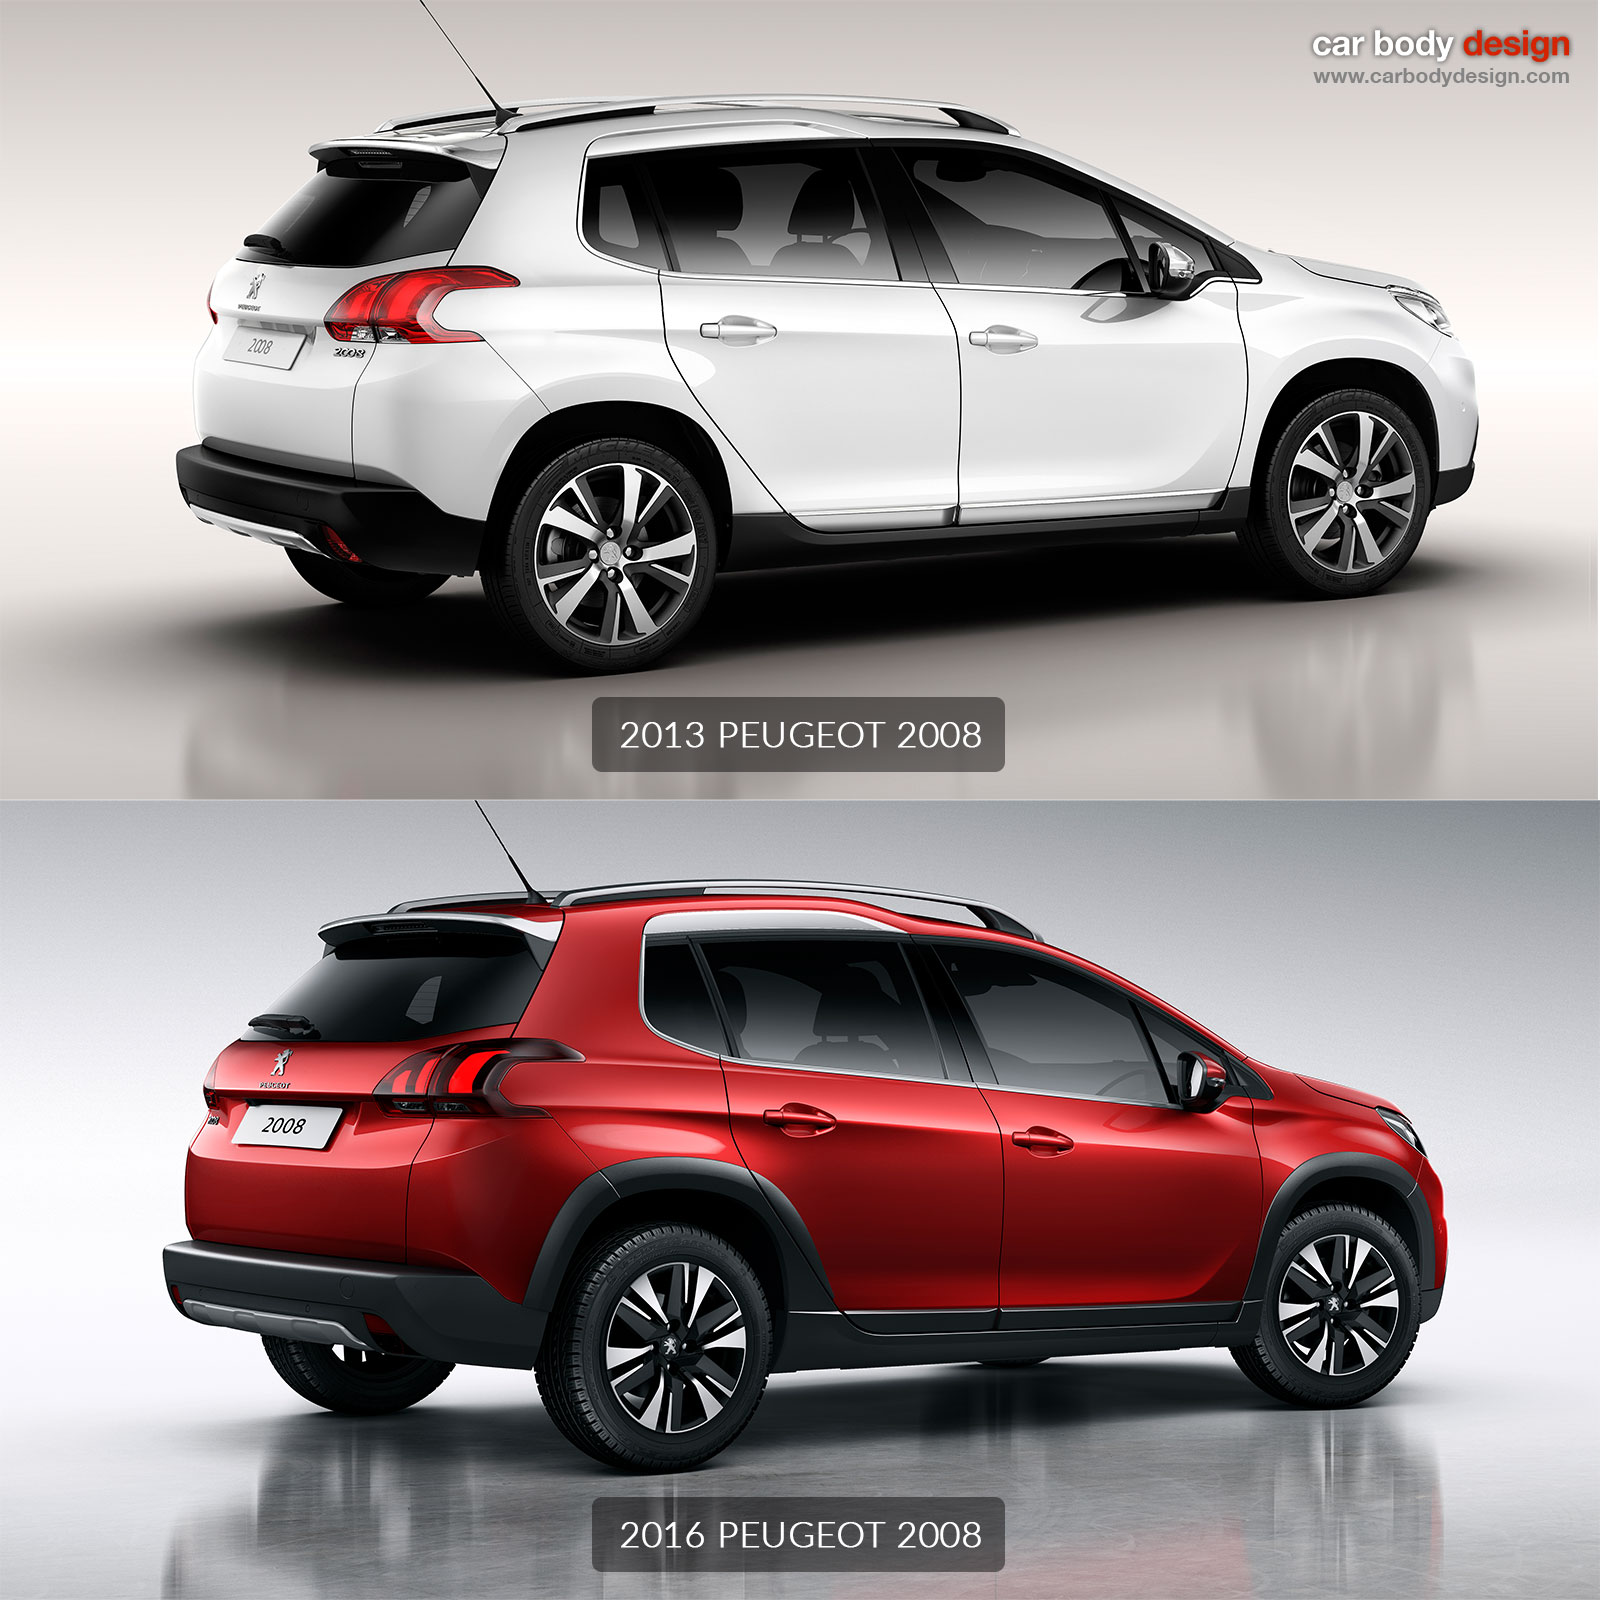 2013 peugeot 2008 vs 2016 peugeot 2008 design comparison car body design. Black Bedroom Furniture Sets. Home Design Ideas